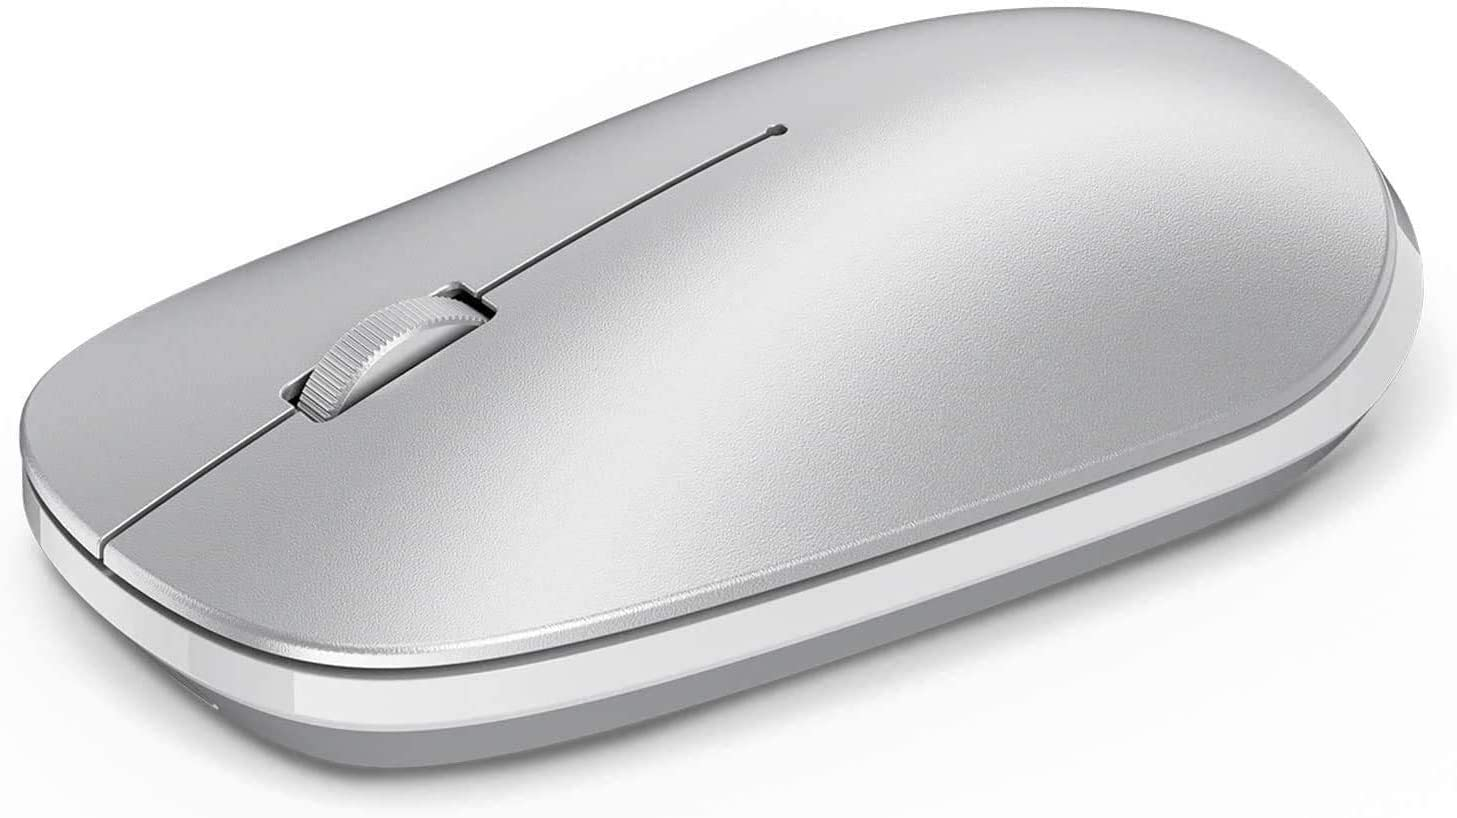 OMOTON Bluetooth Mouse Compatible with iPad 11/12.9, iPad Air 4 10.9, iPad 8th/7th Generation